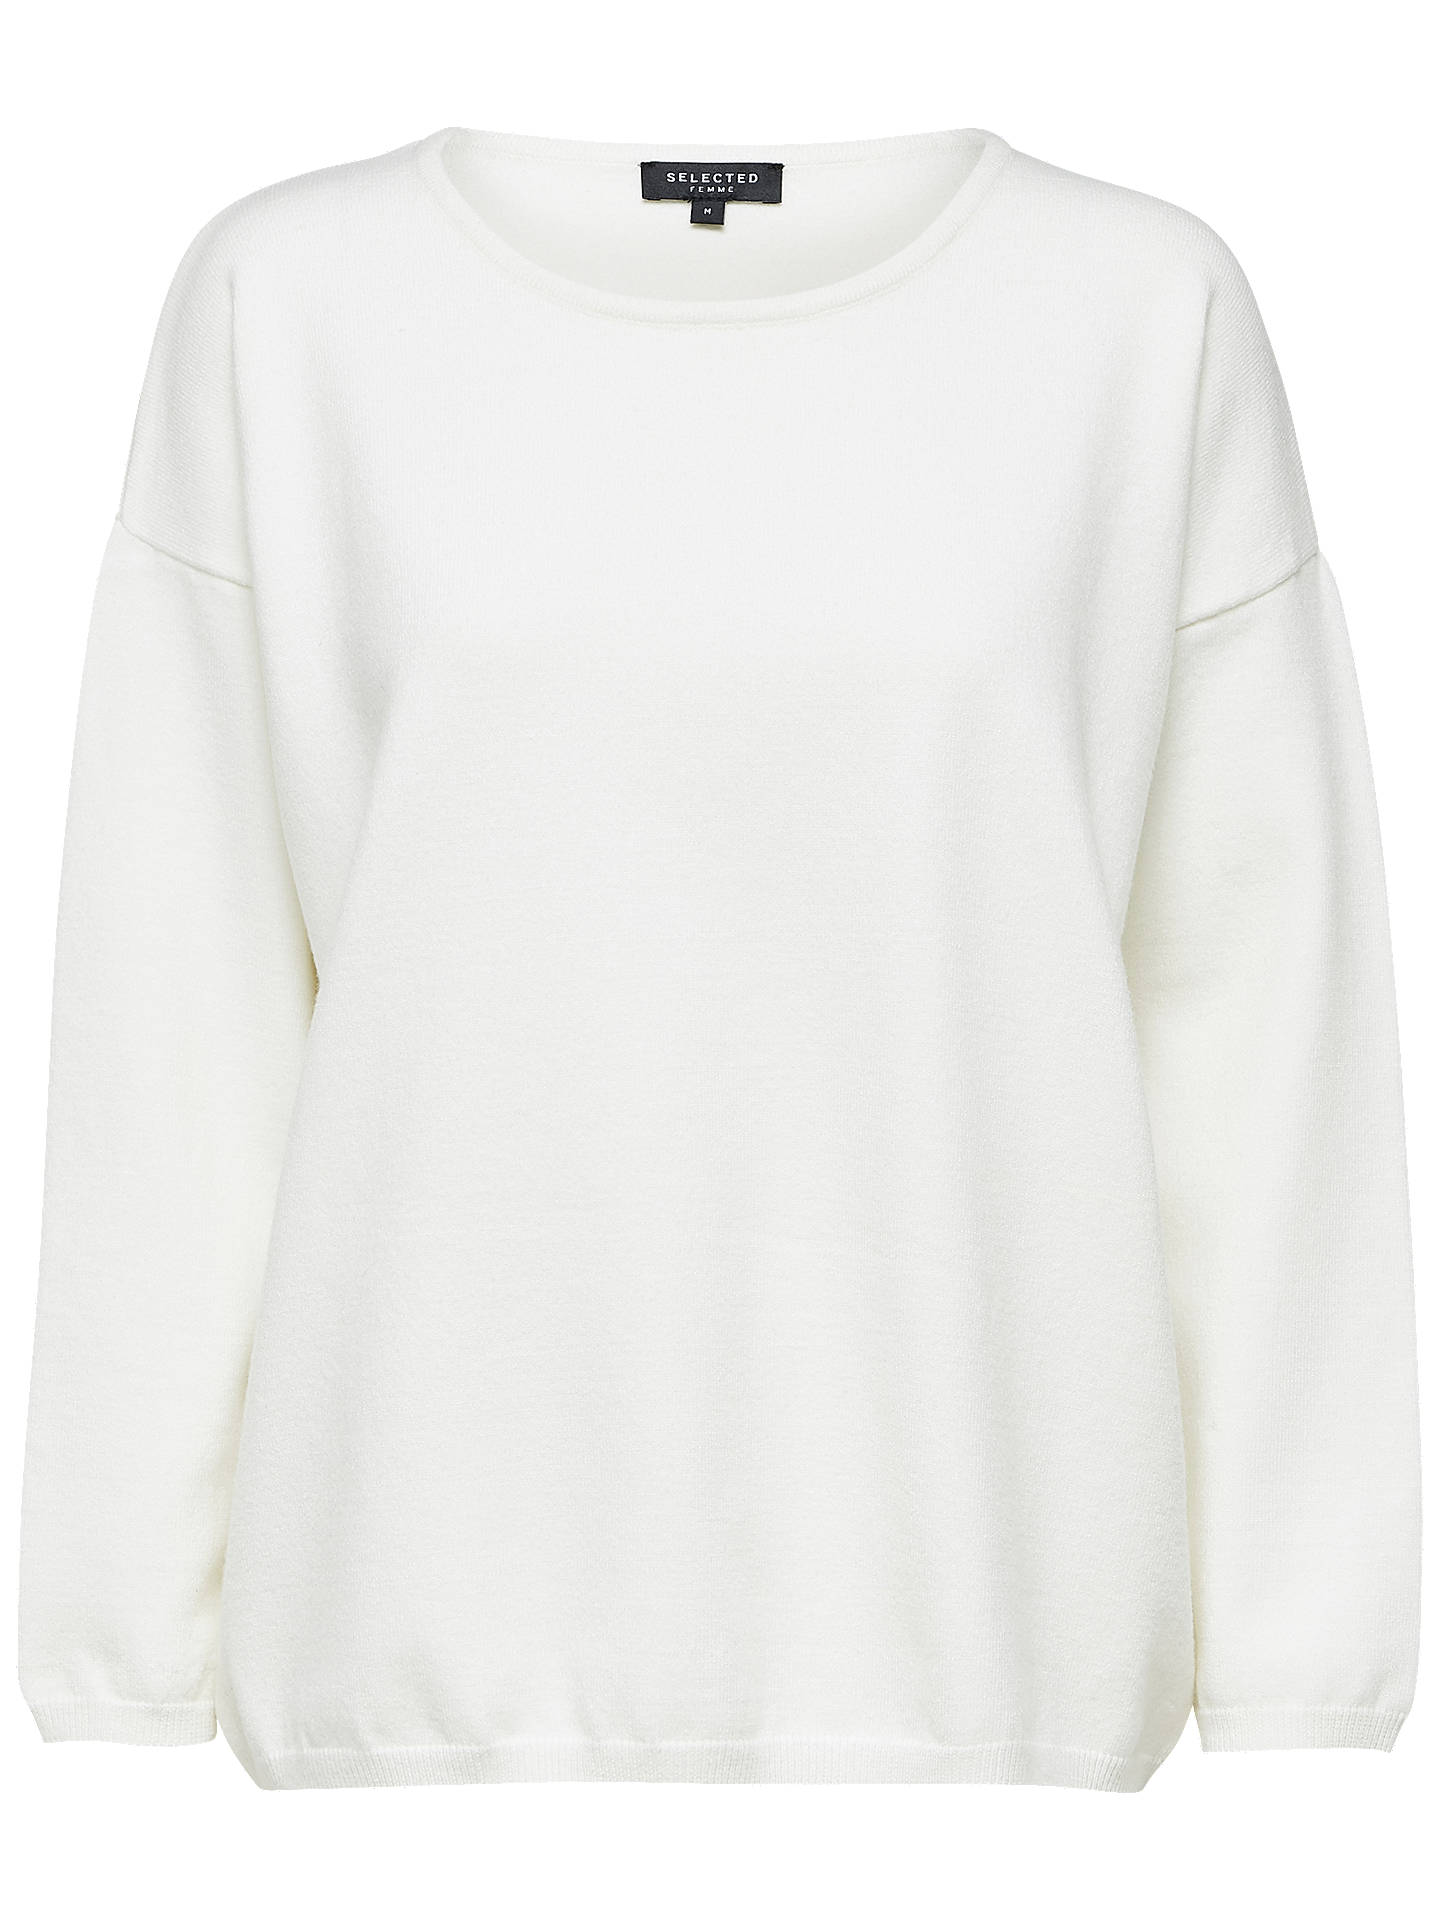 BuySelected Femme Minna Top, Snow White, XS Online at johnlewis.com